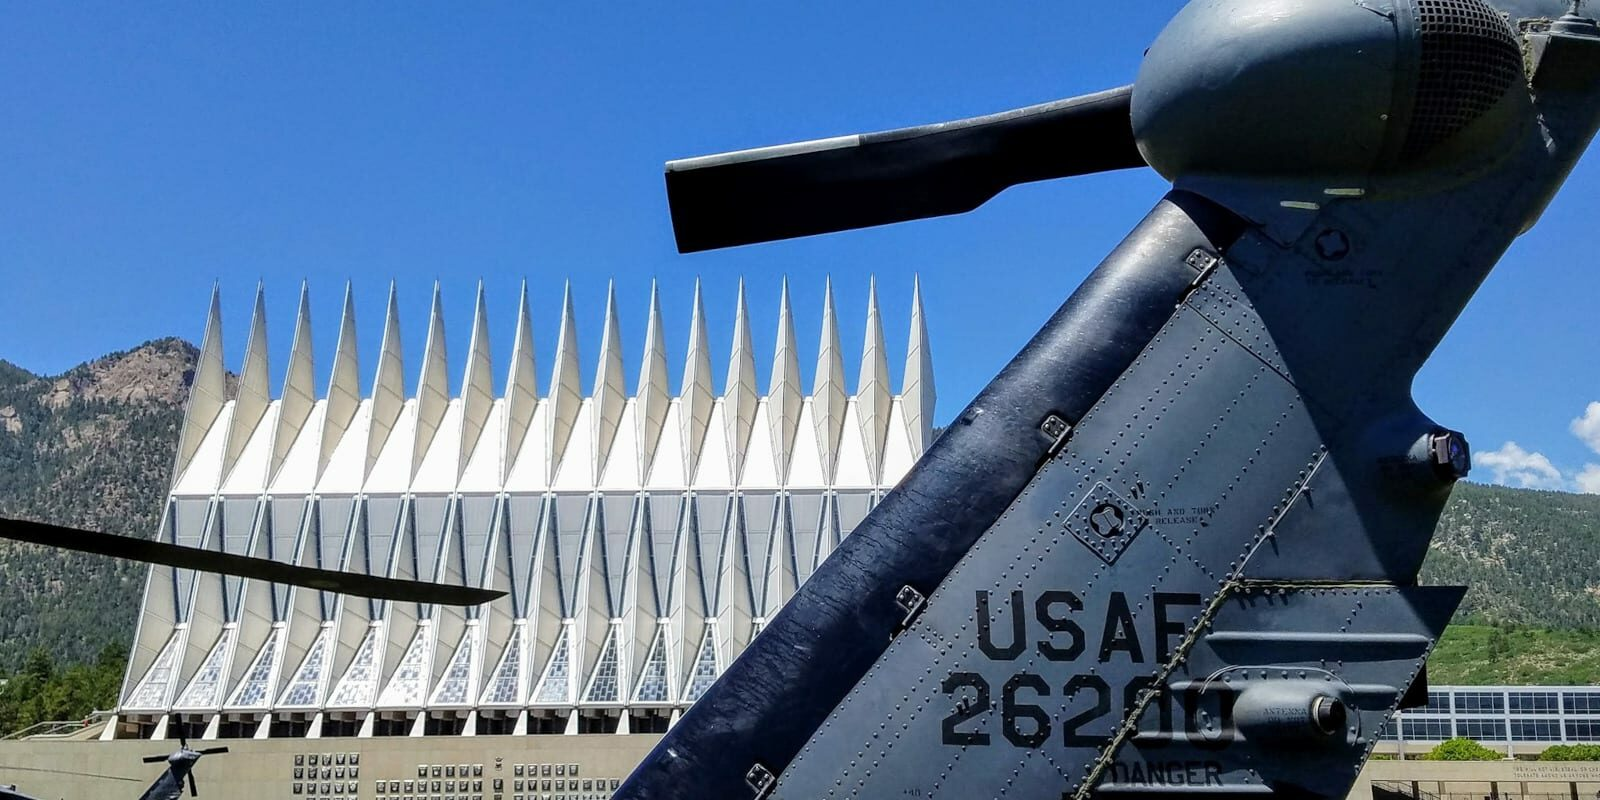 Image of a helicopter in front of the US Air Force Cadet Chapel in Colorado Springs, Colorado